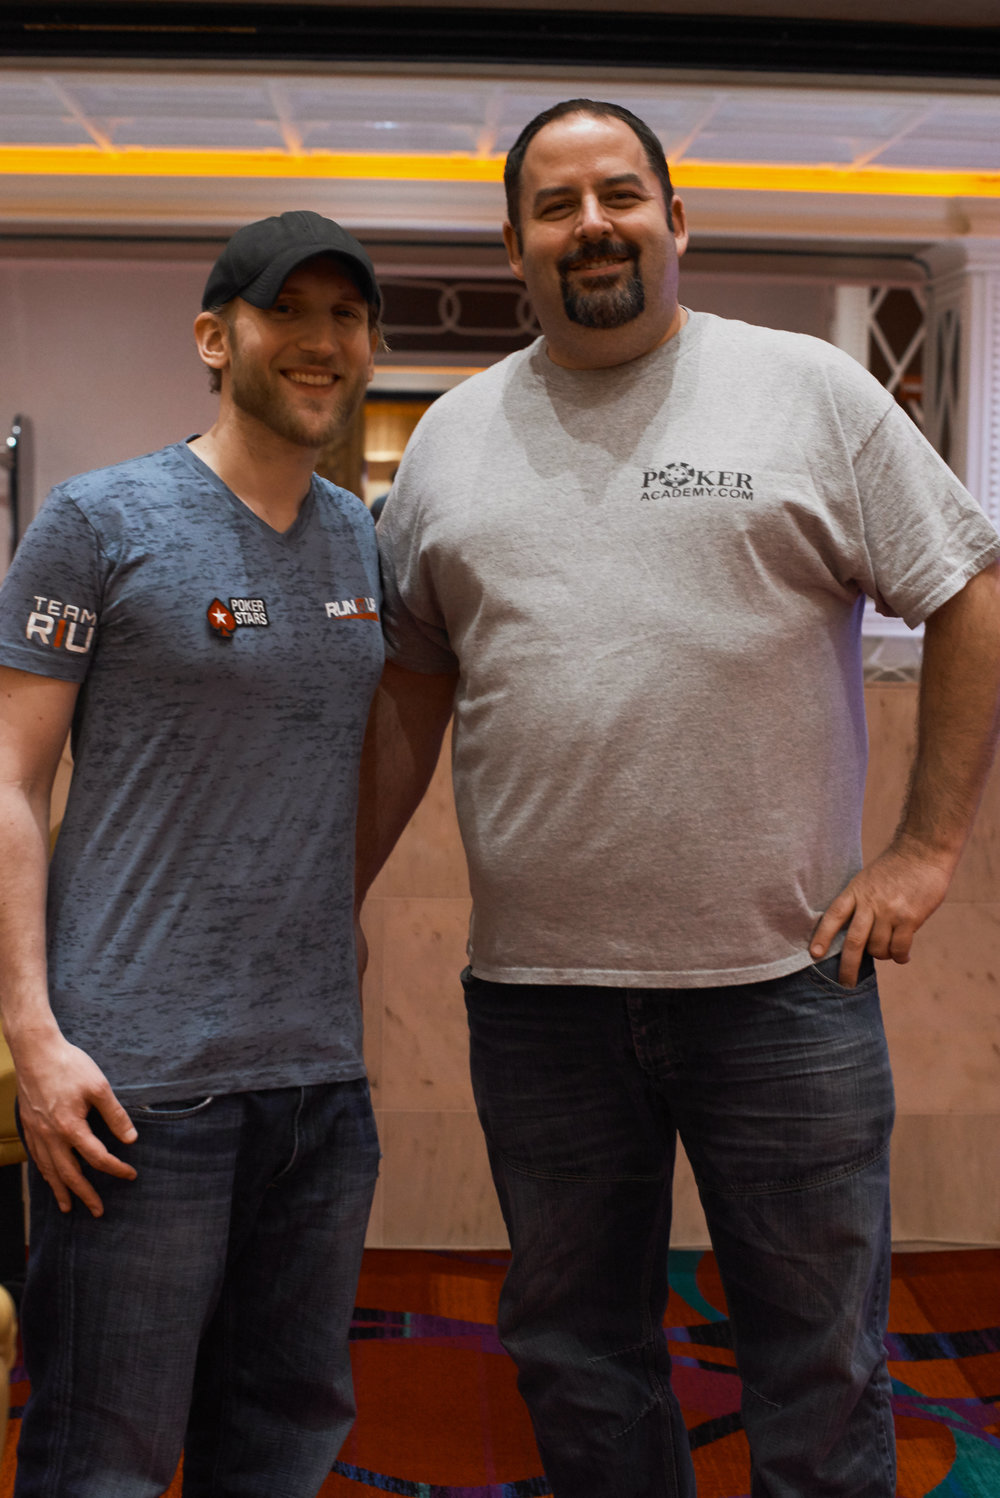 Your friendly Stud seminar hosts Jason Somerville and Rep Porter